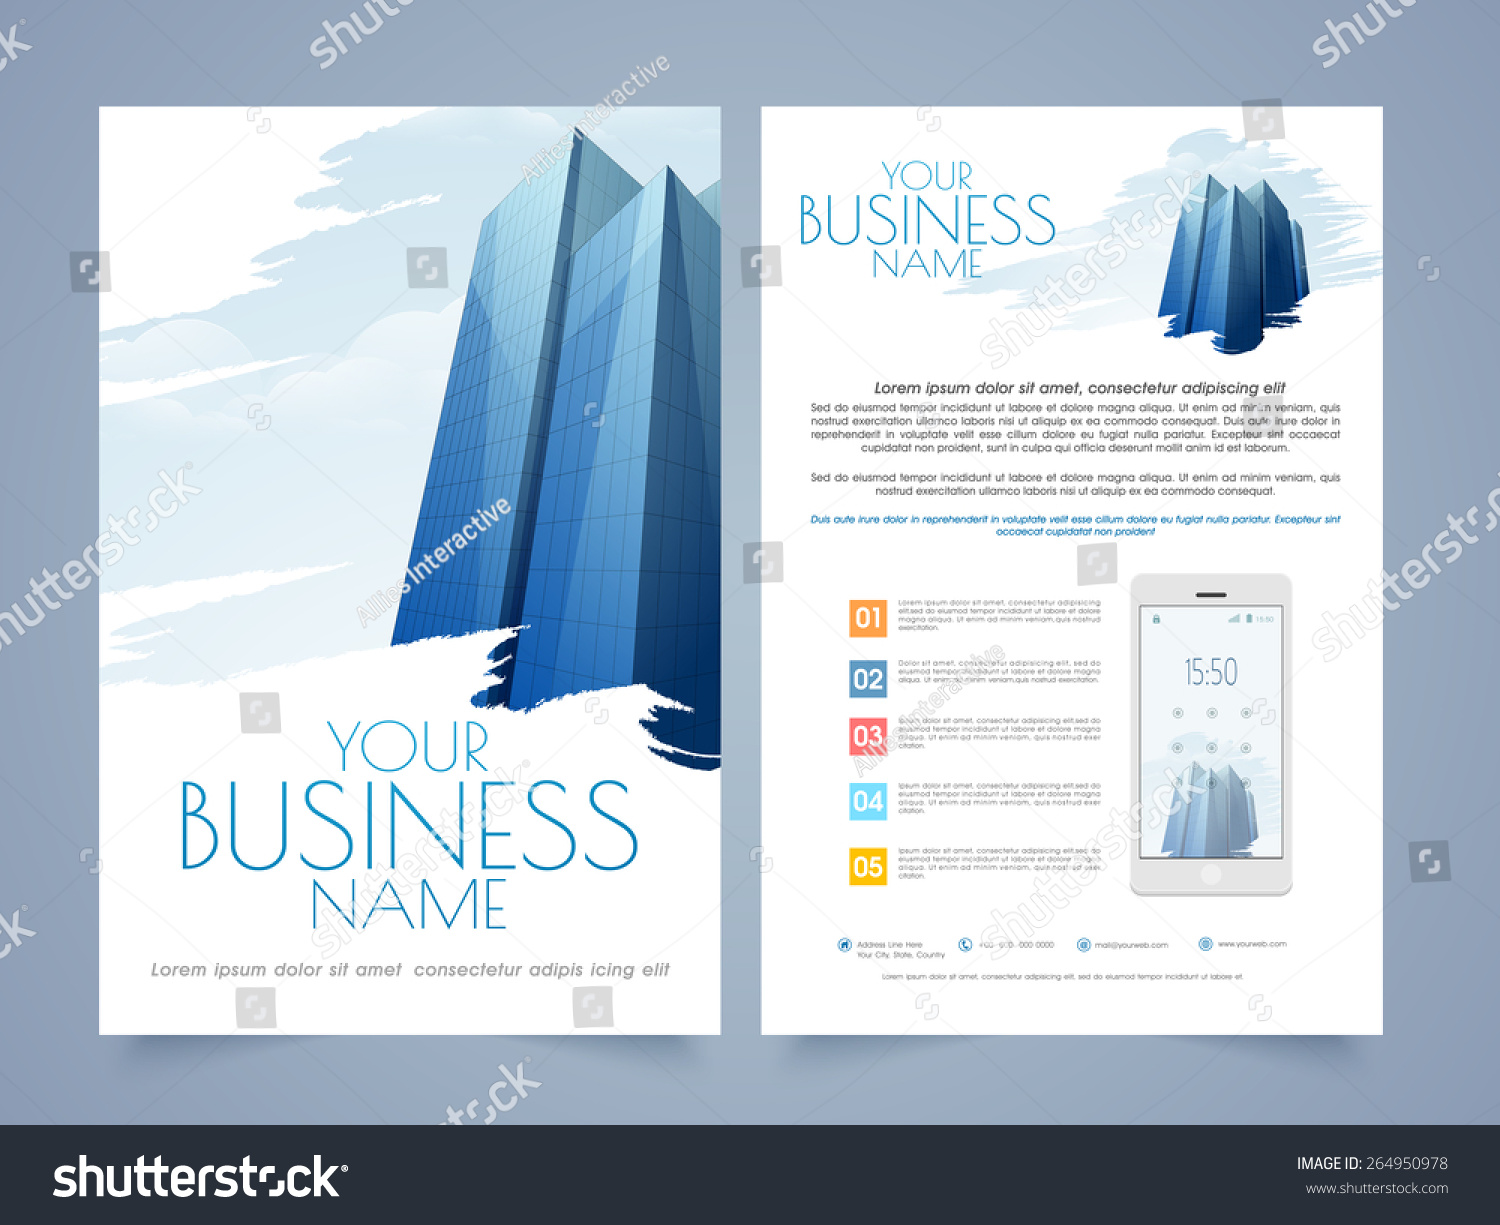 professional two page flyertemplate brochure design lager vektor professional two page flyer template or brochure design for real estate or architect purpose